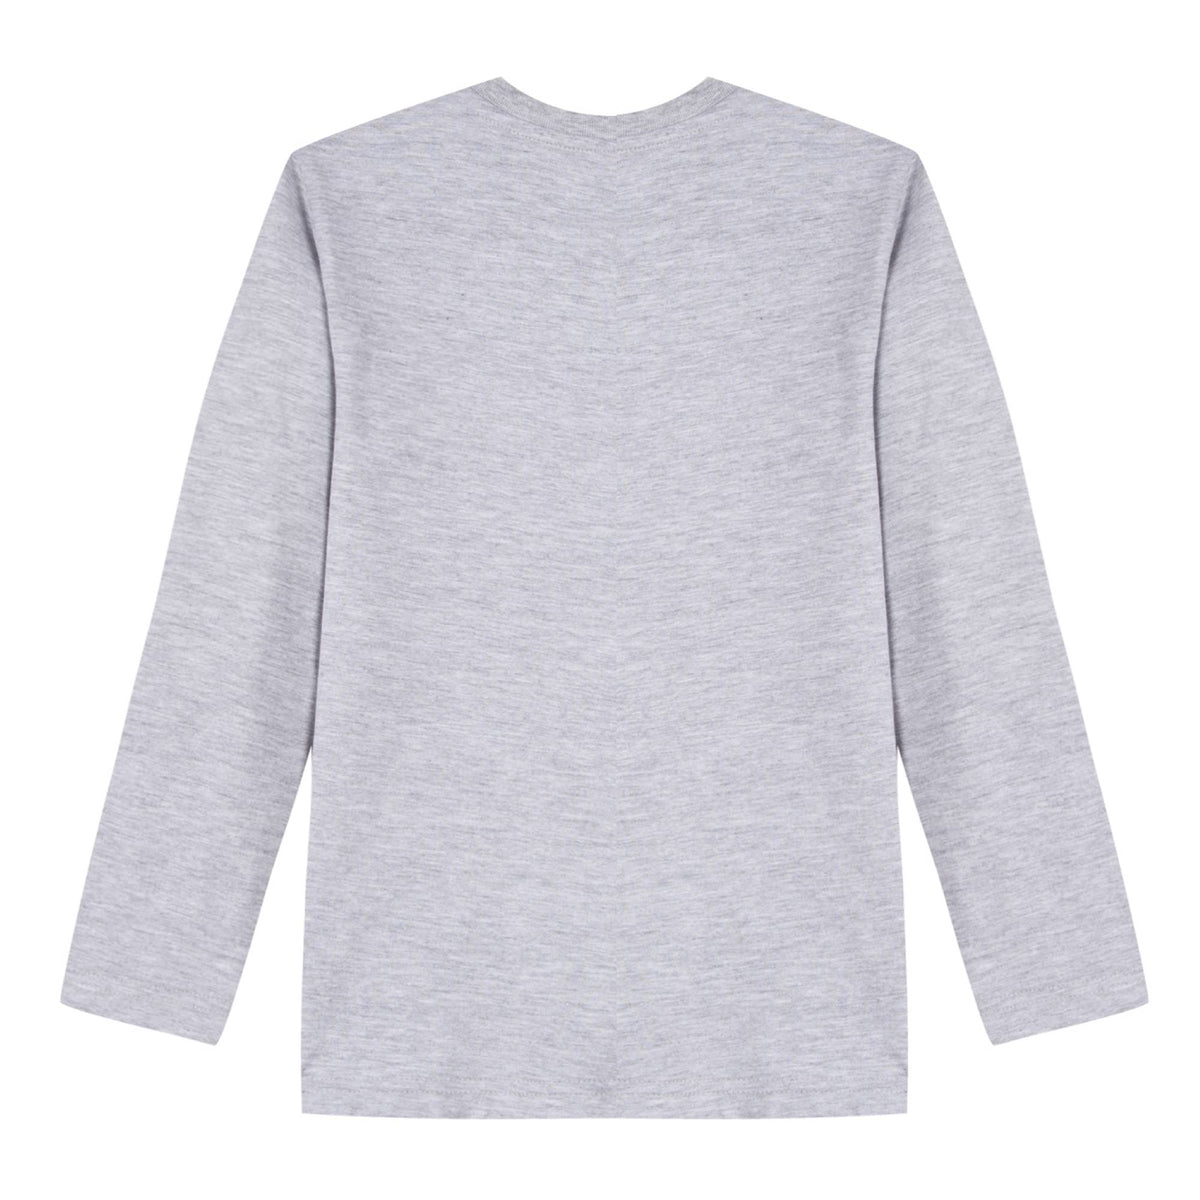 Boys Grey Cotton Print T-Shirt